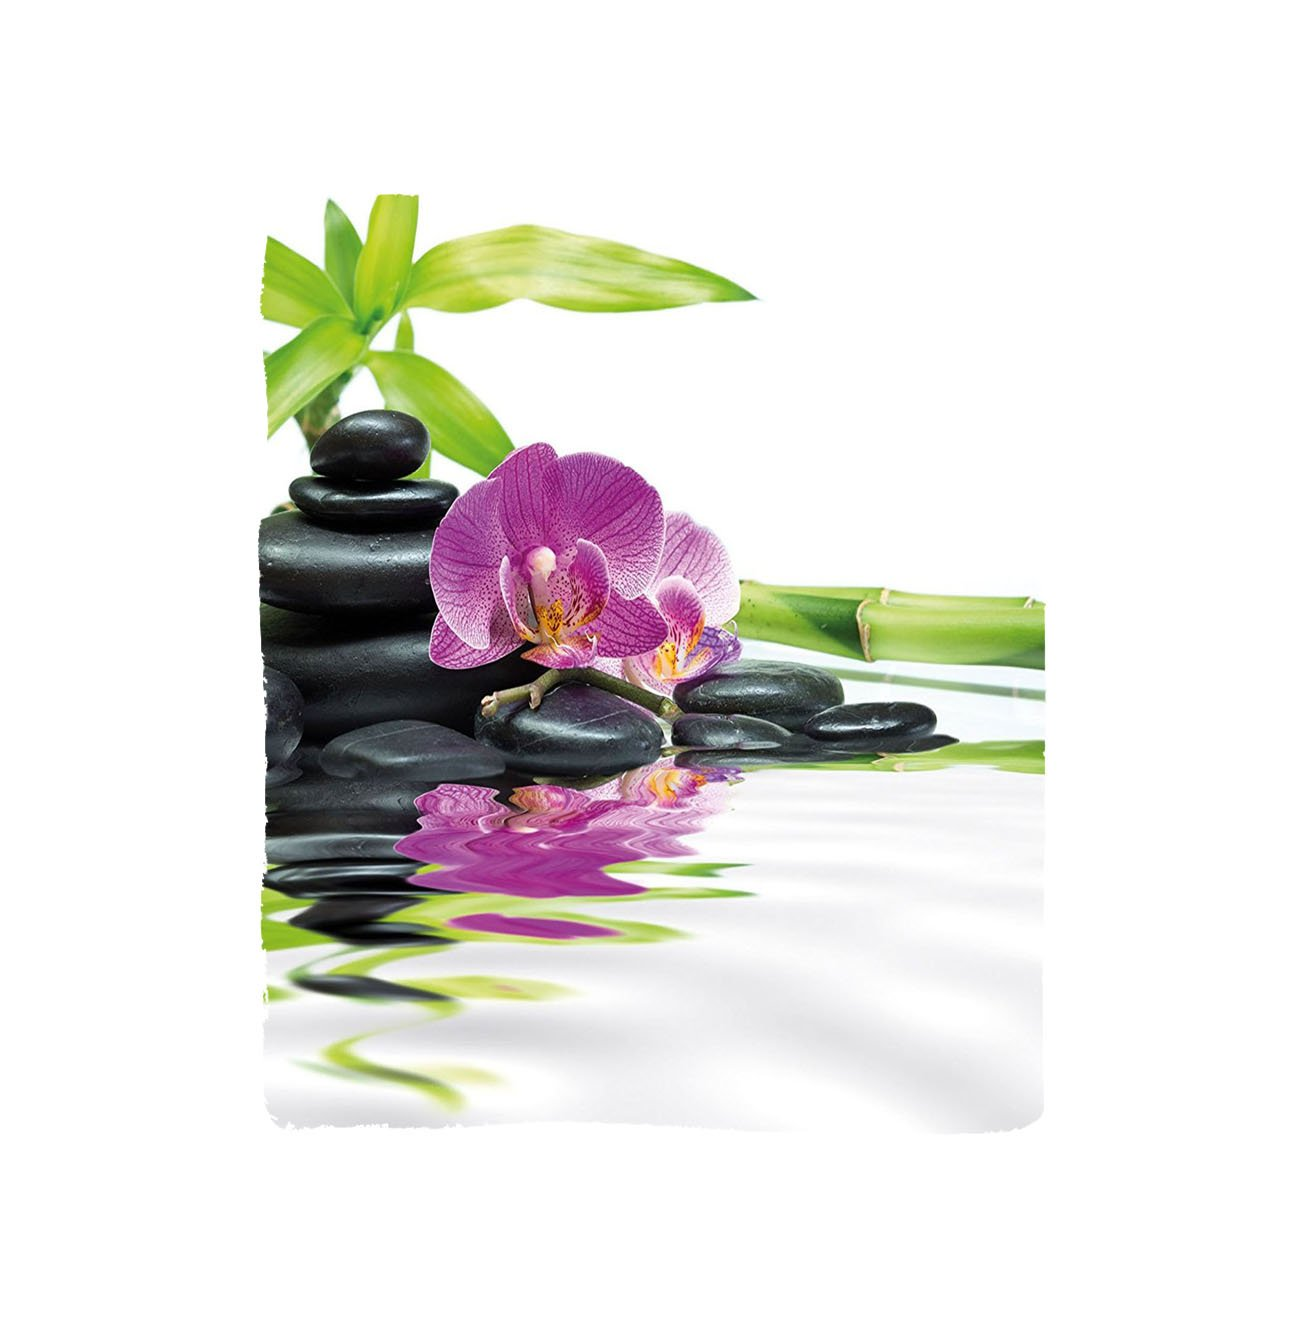 VROSELV Custom Blanket Spa Asian Relaxation with Zen Massage Stones Purple Orchid and a Bamboo Bedroom Living Room Dorm Purple Black and Green